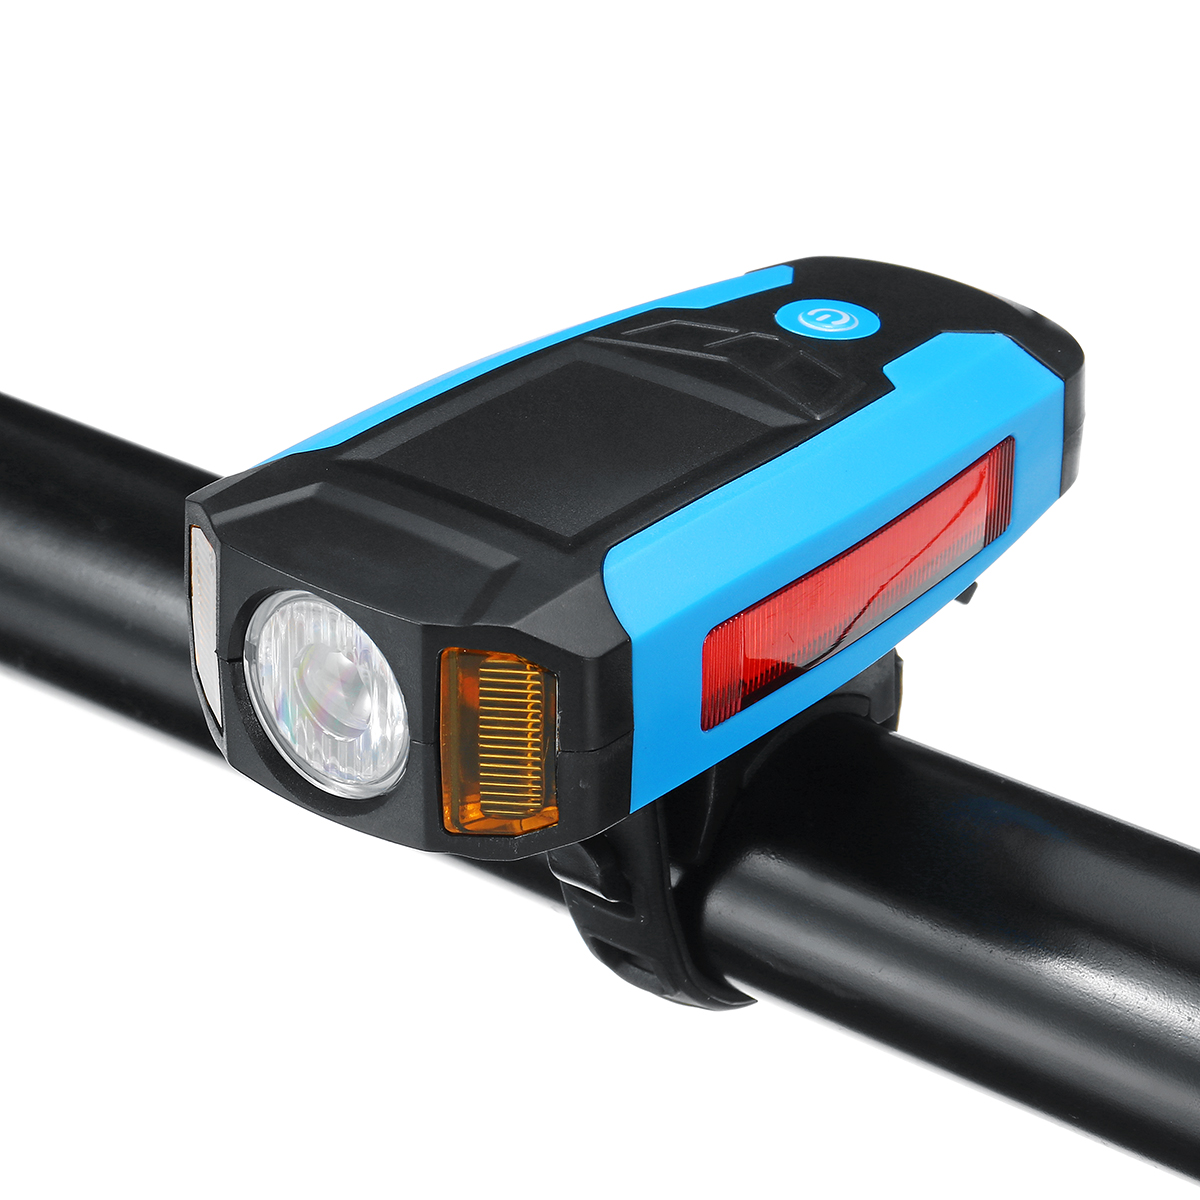 3-In-1 300LM COB Bike Headlight LCD Screen 5-Modes Bicycle Frame Lamp 130Db Bike Horn Waterproof Outdoor Cycling